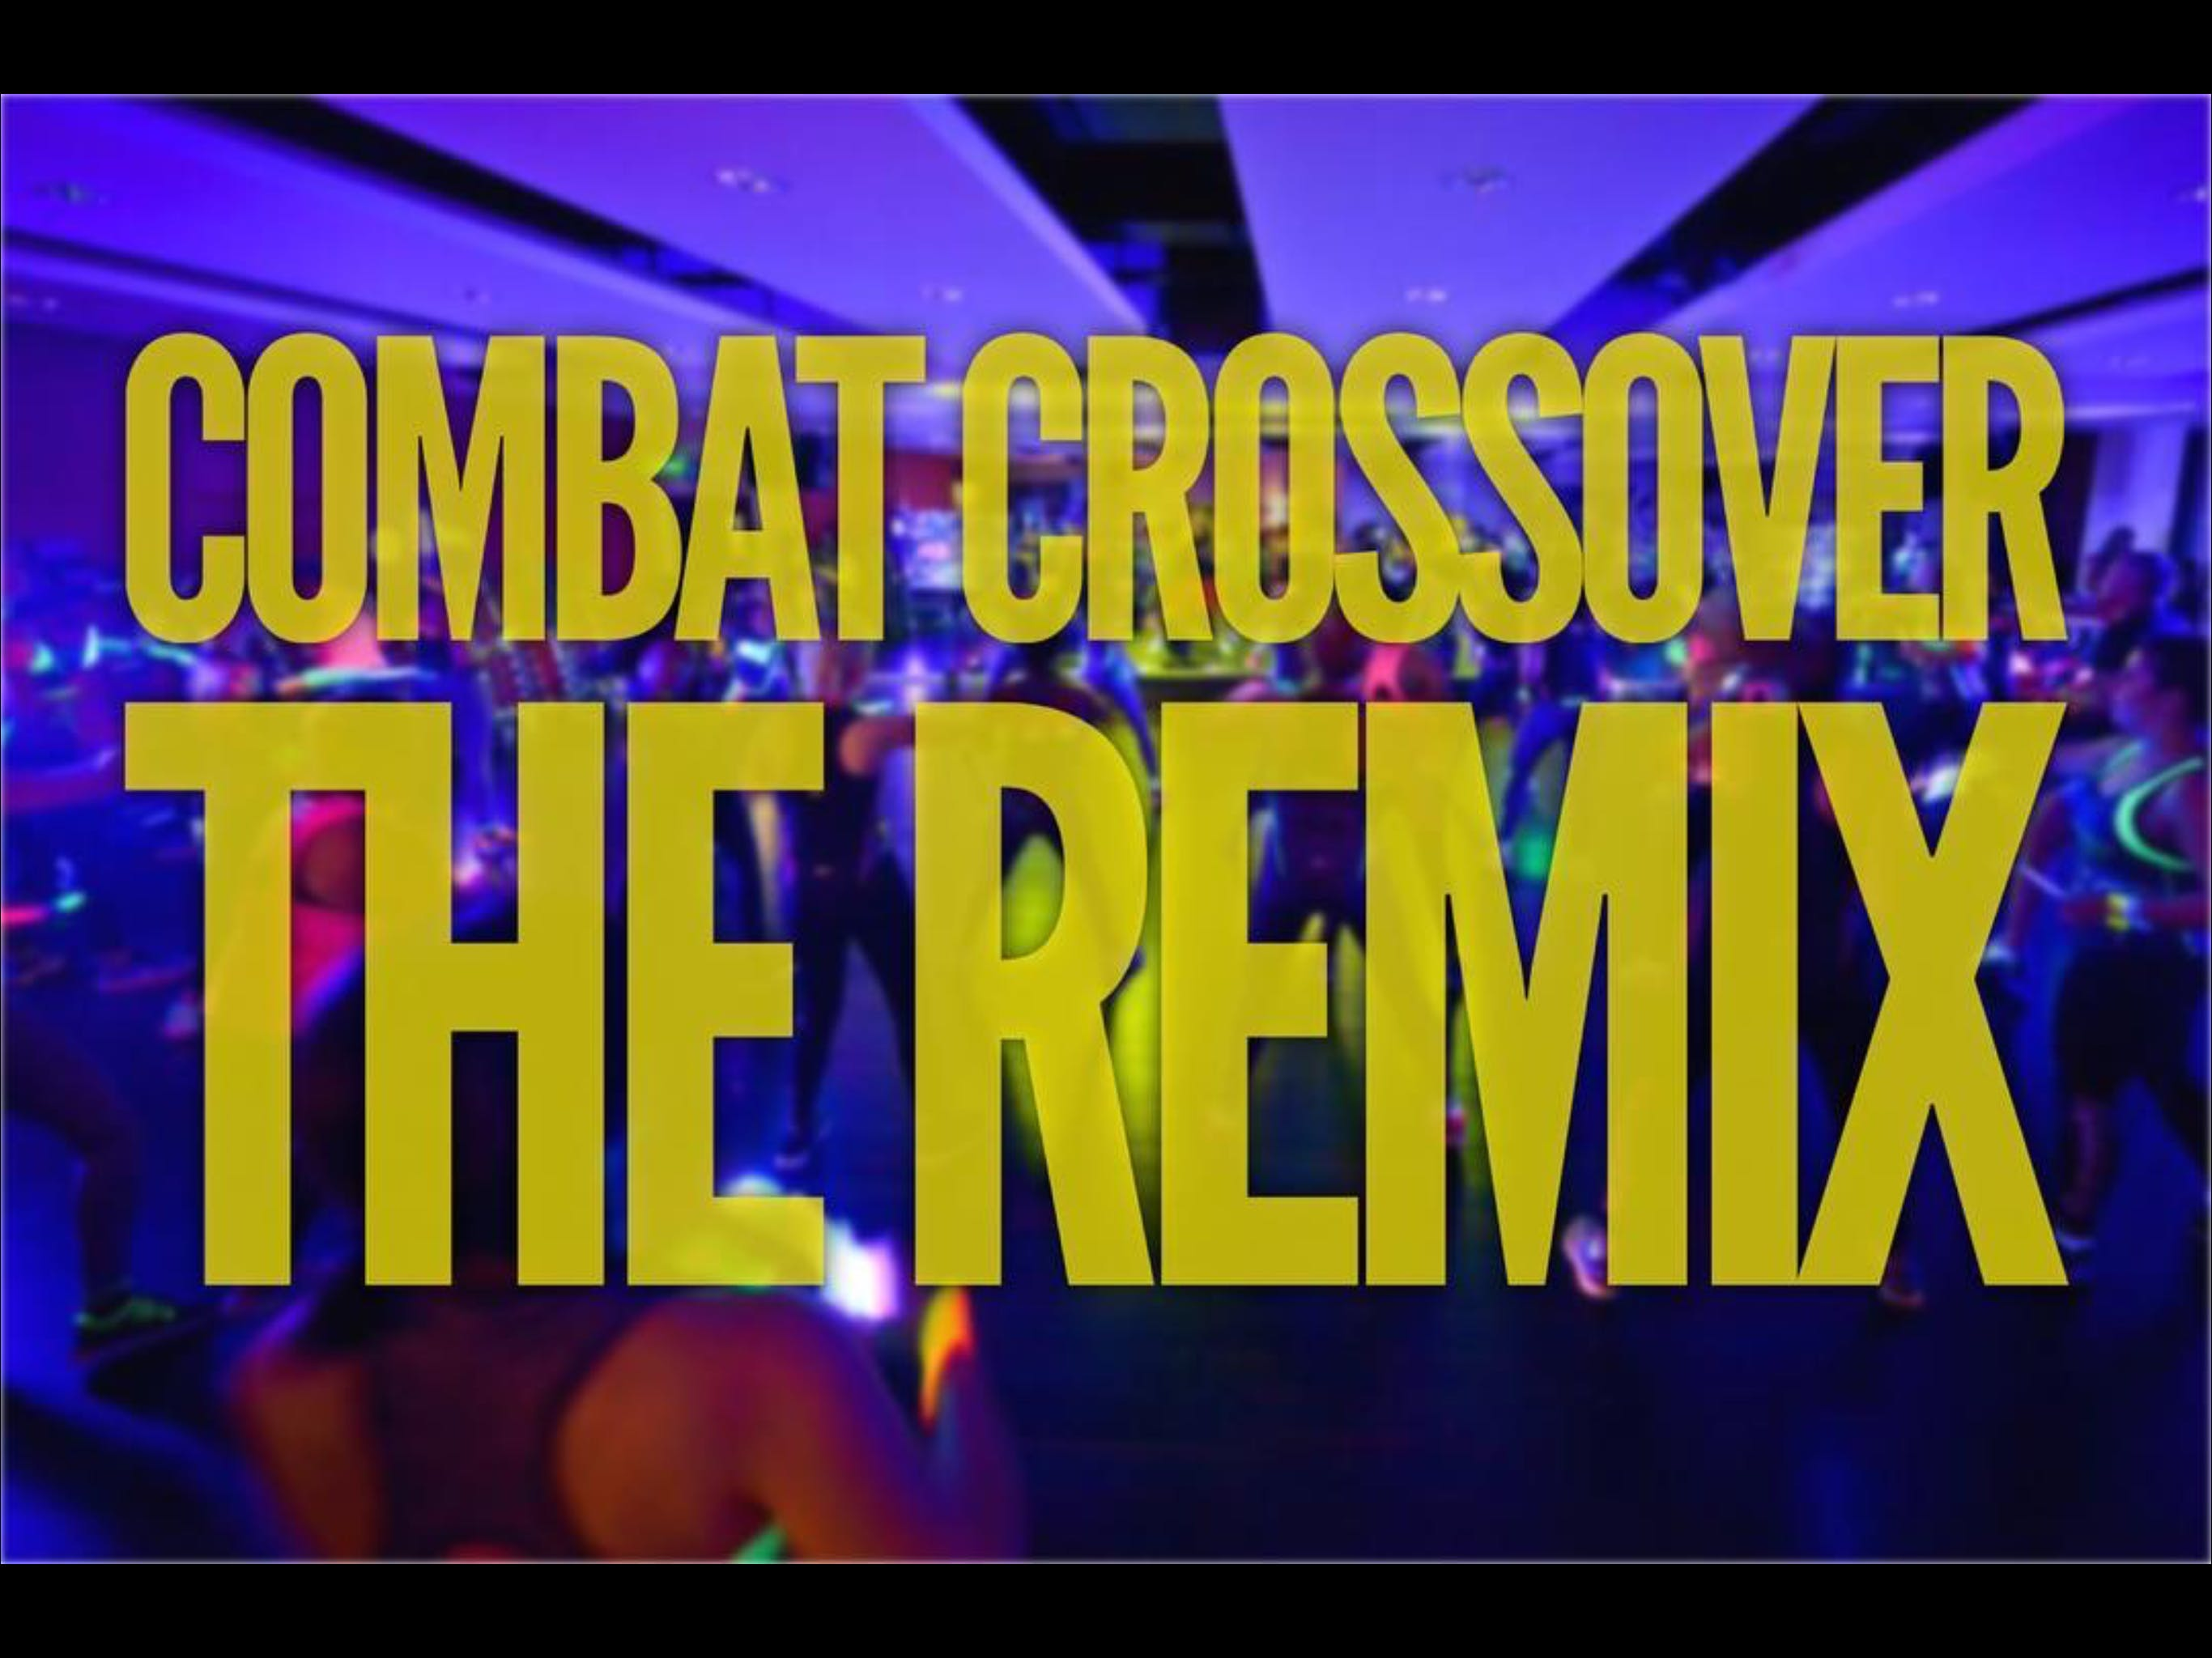 Combat Crossover The Remix